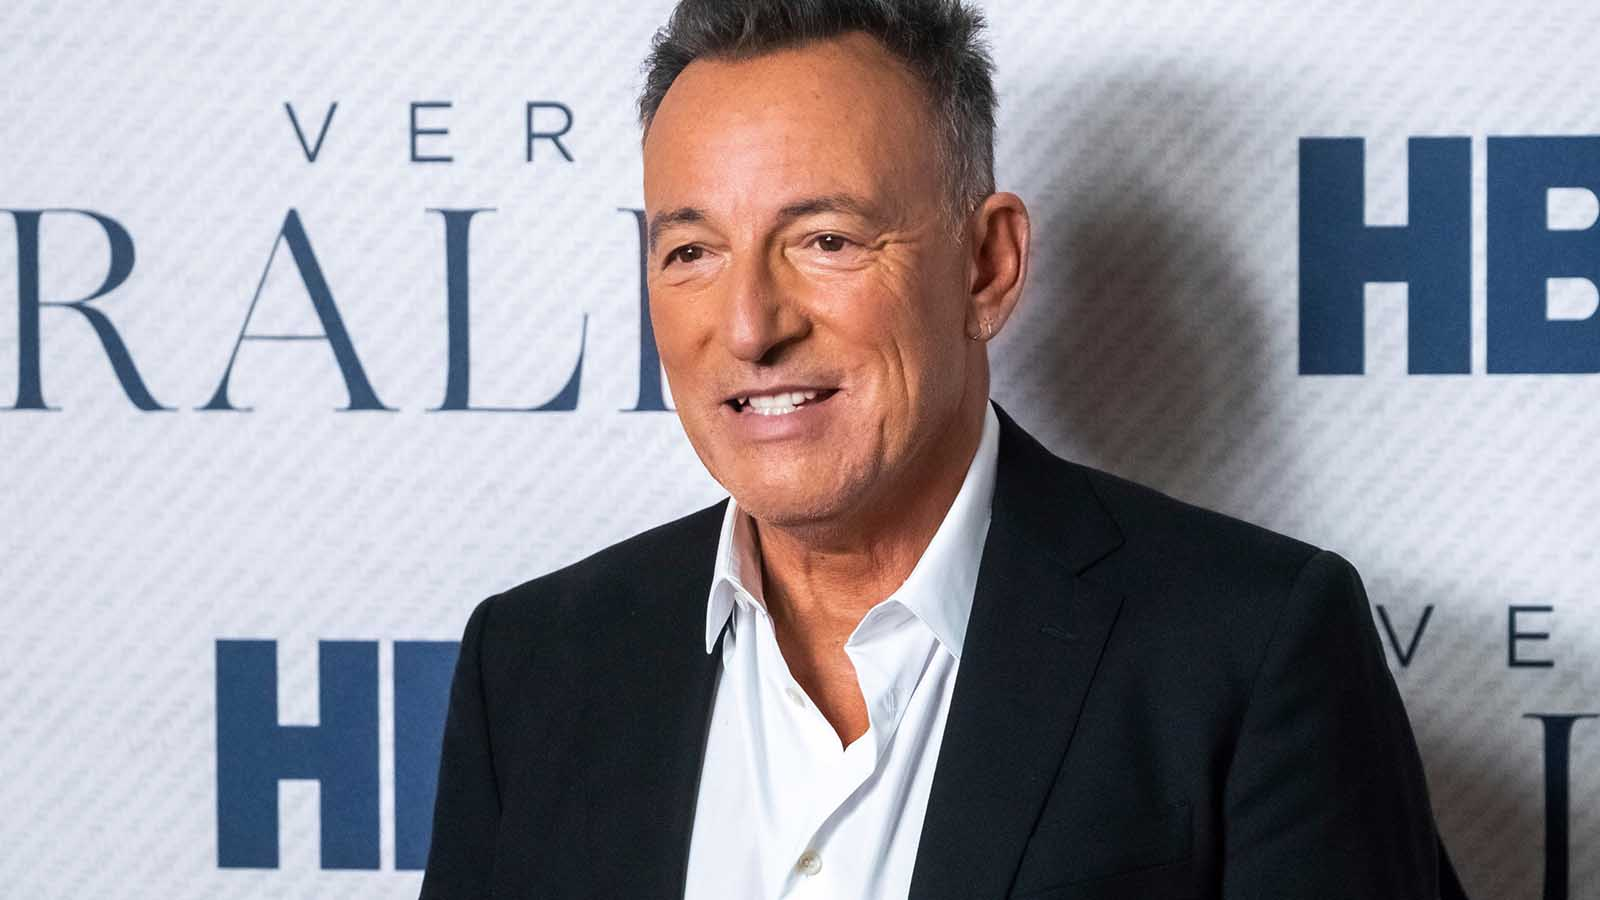 Bruce Springsteen was charged with a DUI, reckless driving, and more, but only had to deal with one charge. Find out if he used his net worth for freedom.